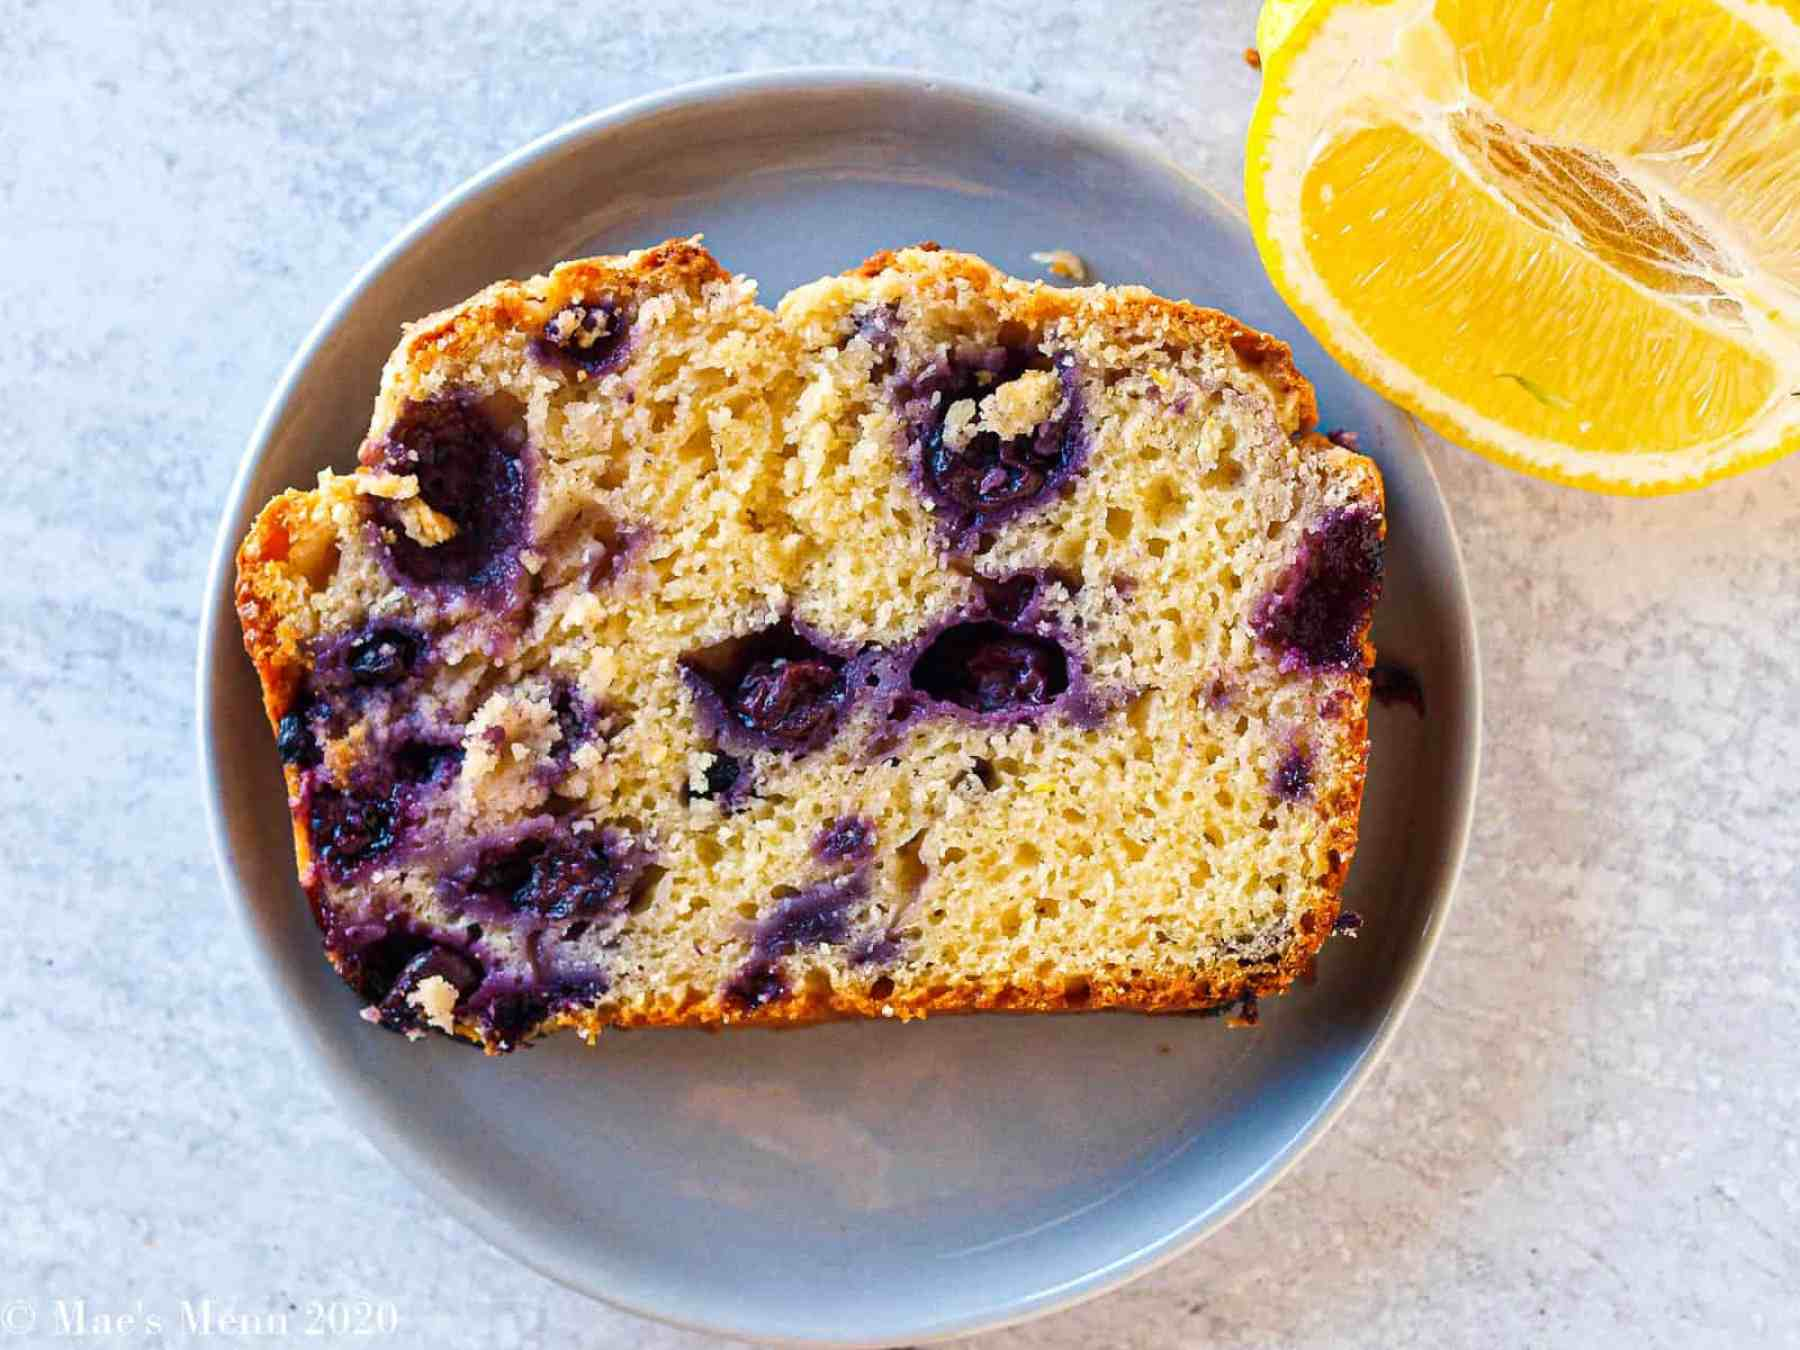 An overhead shot of a piece of blueberry lemon bread on a small grey plate.